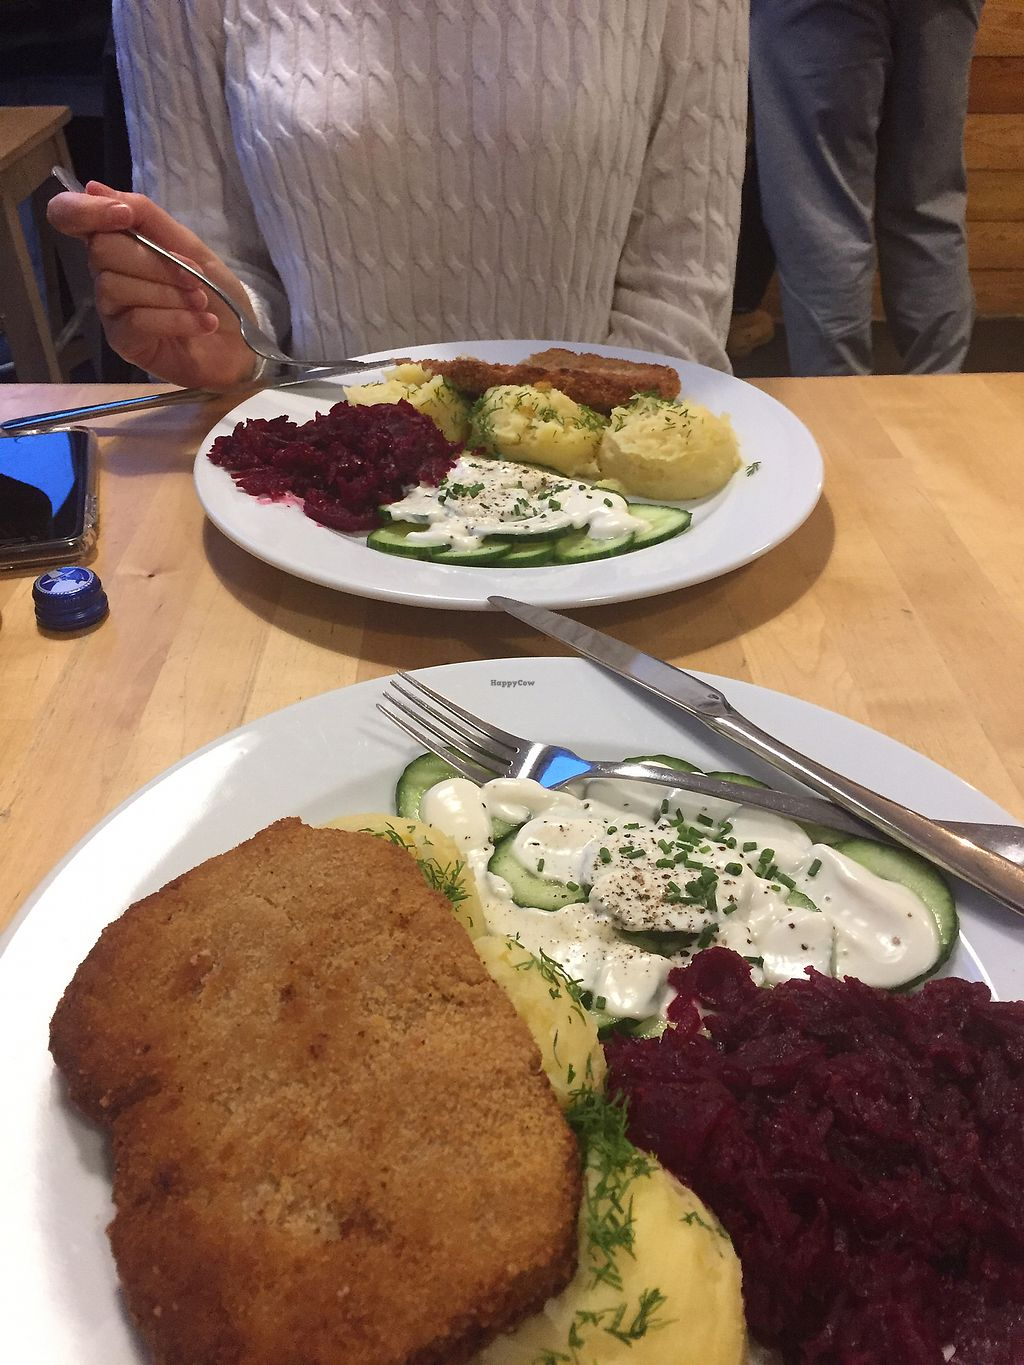 """Photo of Lokal Vegan Bistro  by <a href=""""/members/profile/ElkaMayaCoucou"""">ElkaMayaCoucou</a> <br/>zimowy schabowy <br/> January 31, 2018  - <a href='/contact/abuse/image/55545/353169'>Report</a>"""